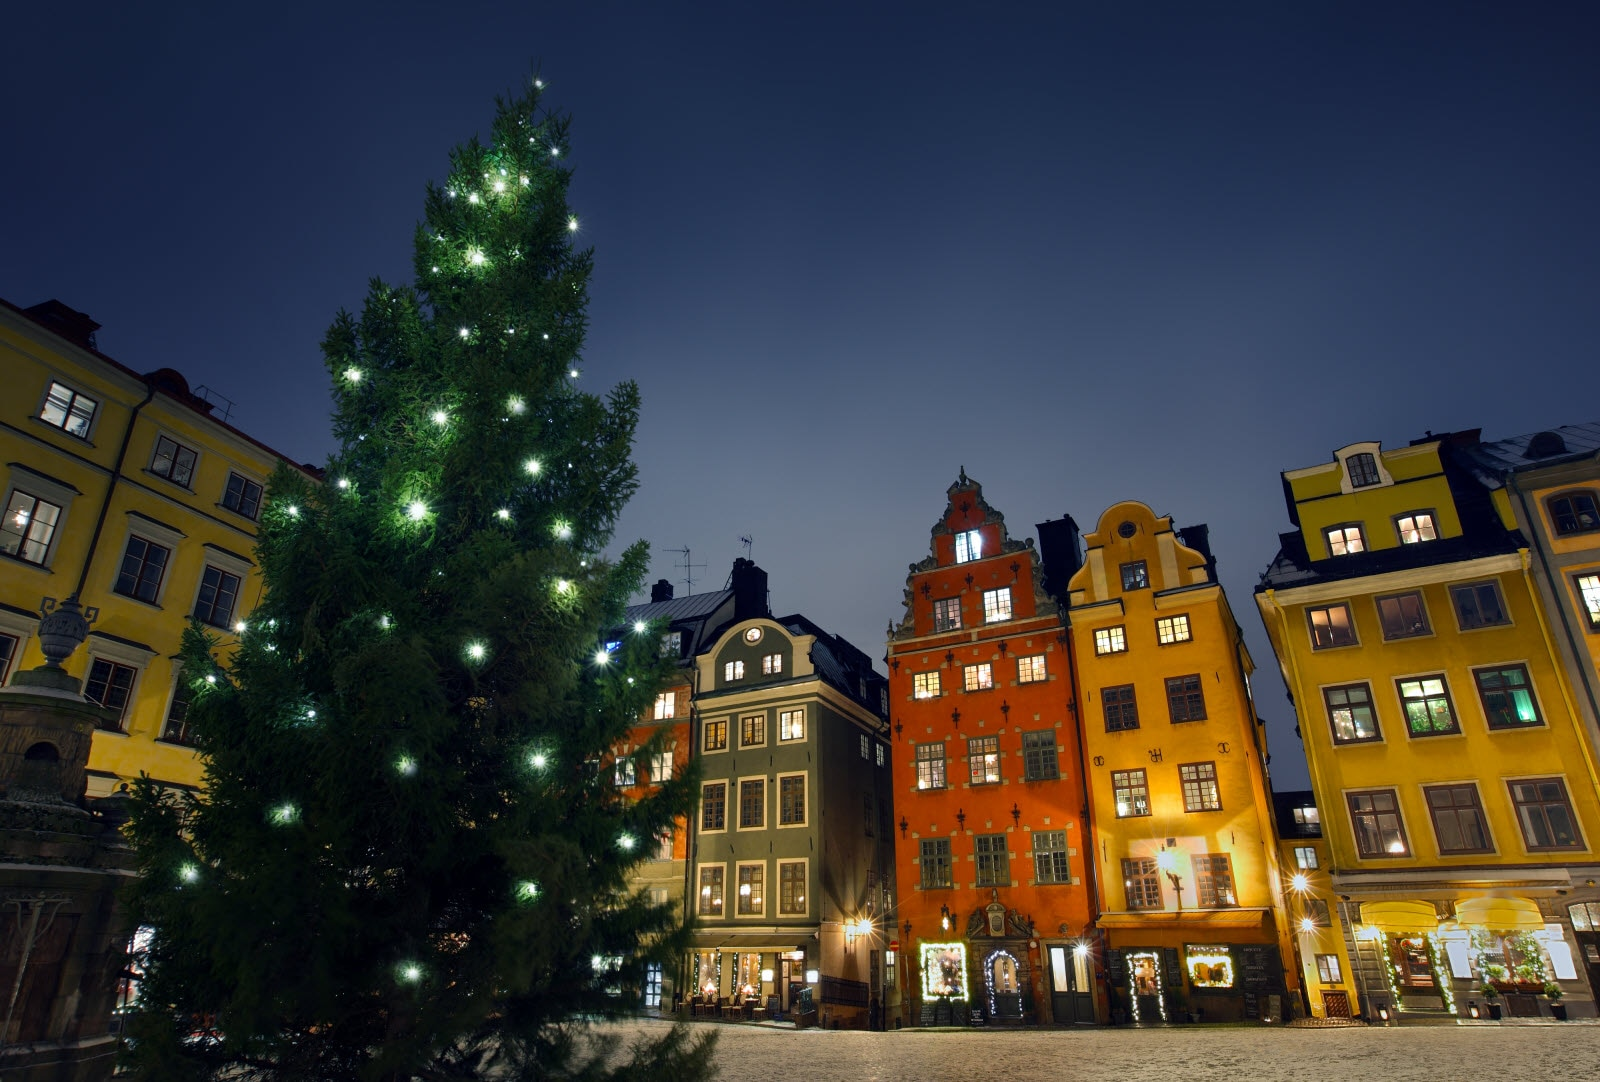 Mostphotos_Stortorget-at-chritmas-time_by_MikaelDa.jpg